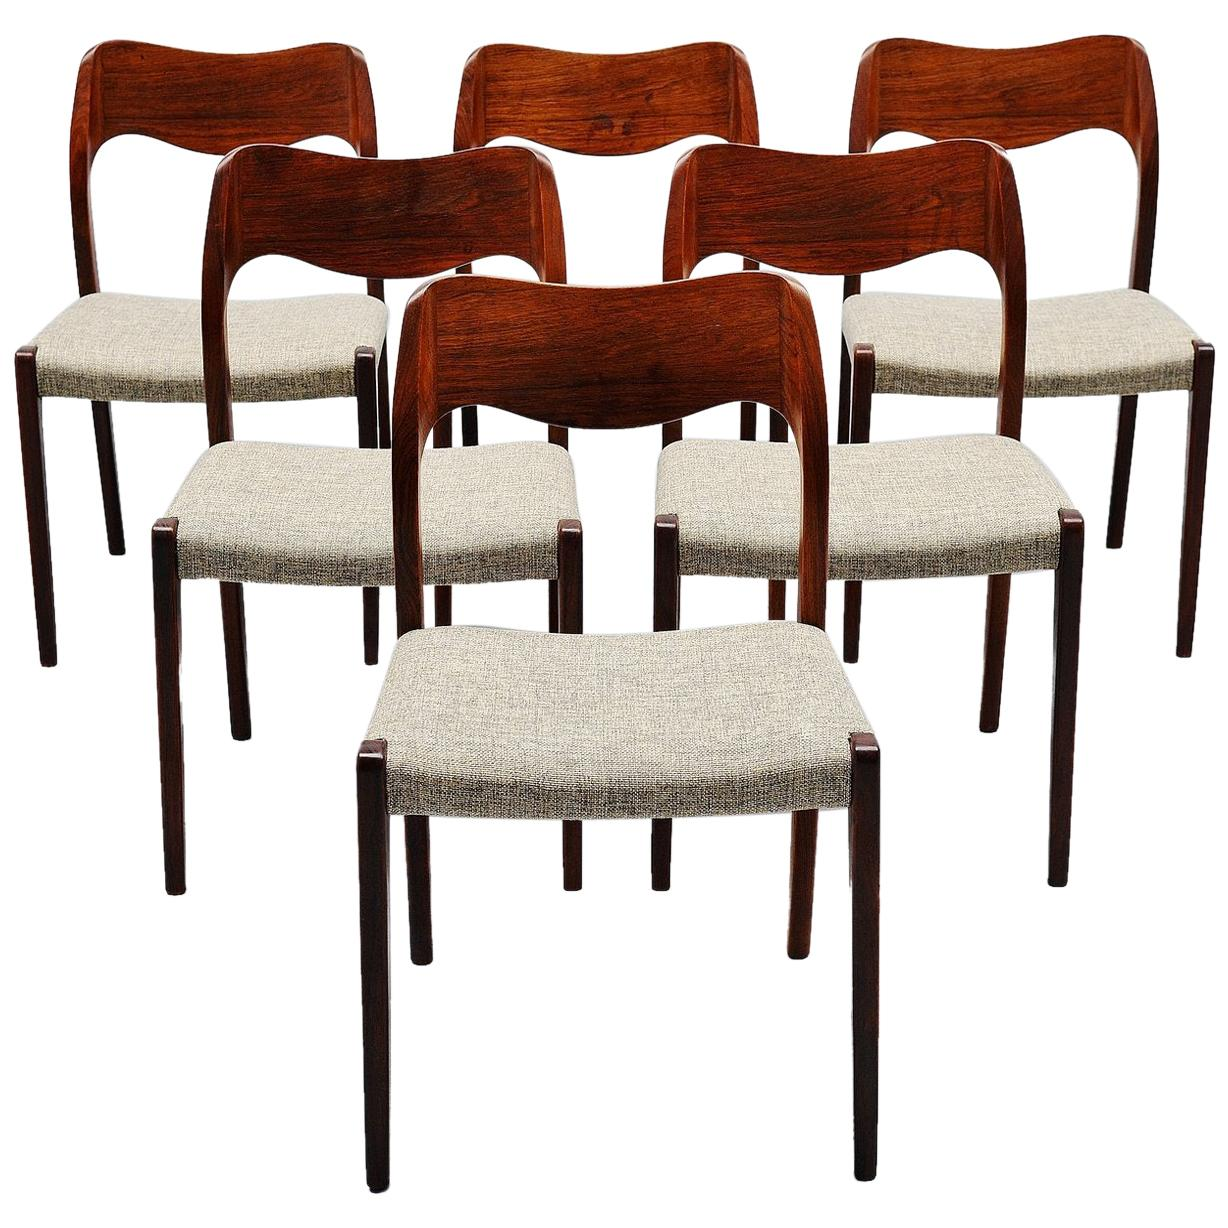 Niels Moller Model 71 Rosewood Dining Chairs 6, Denmark, 1951